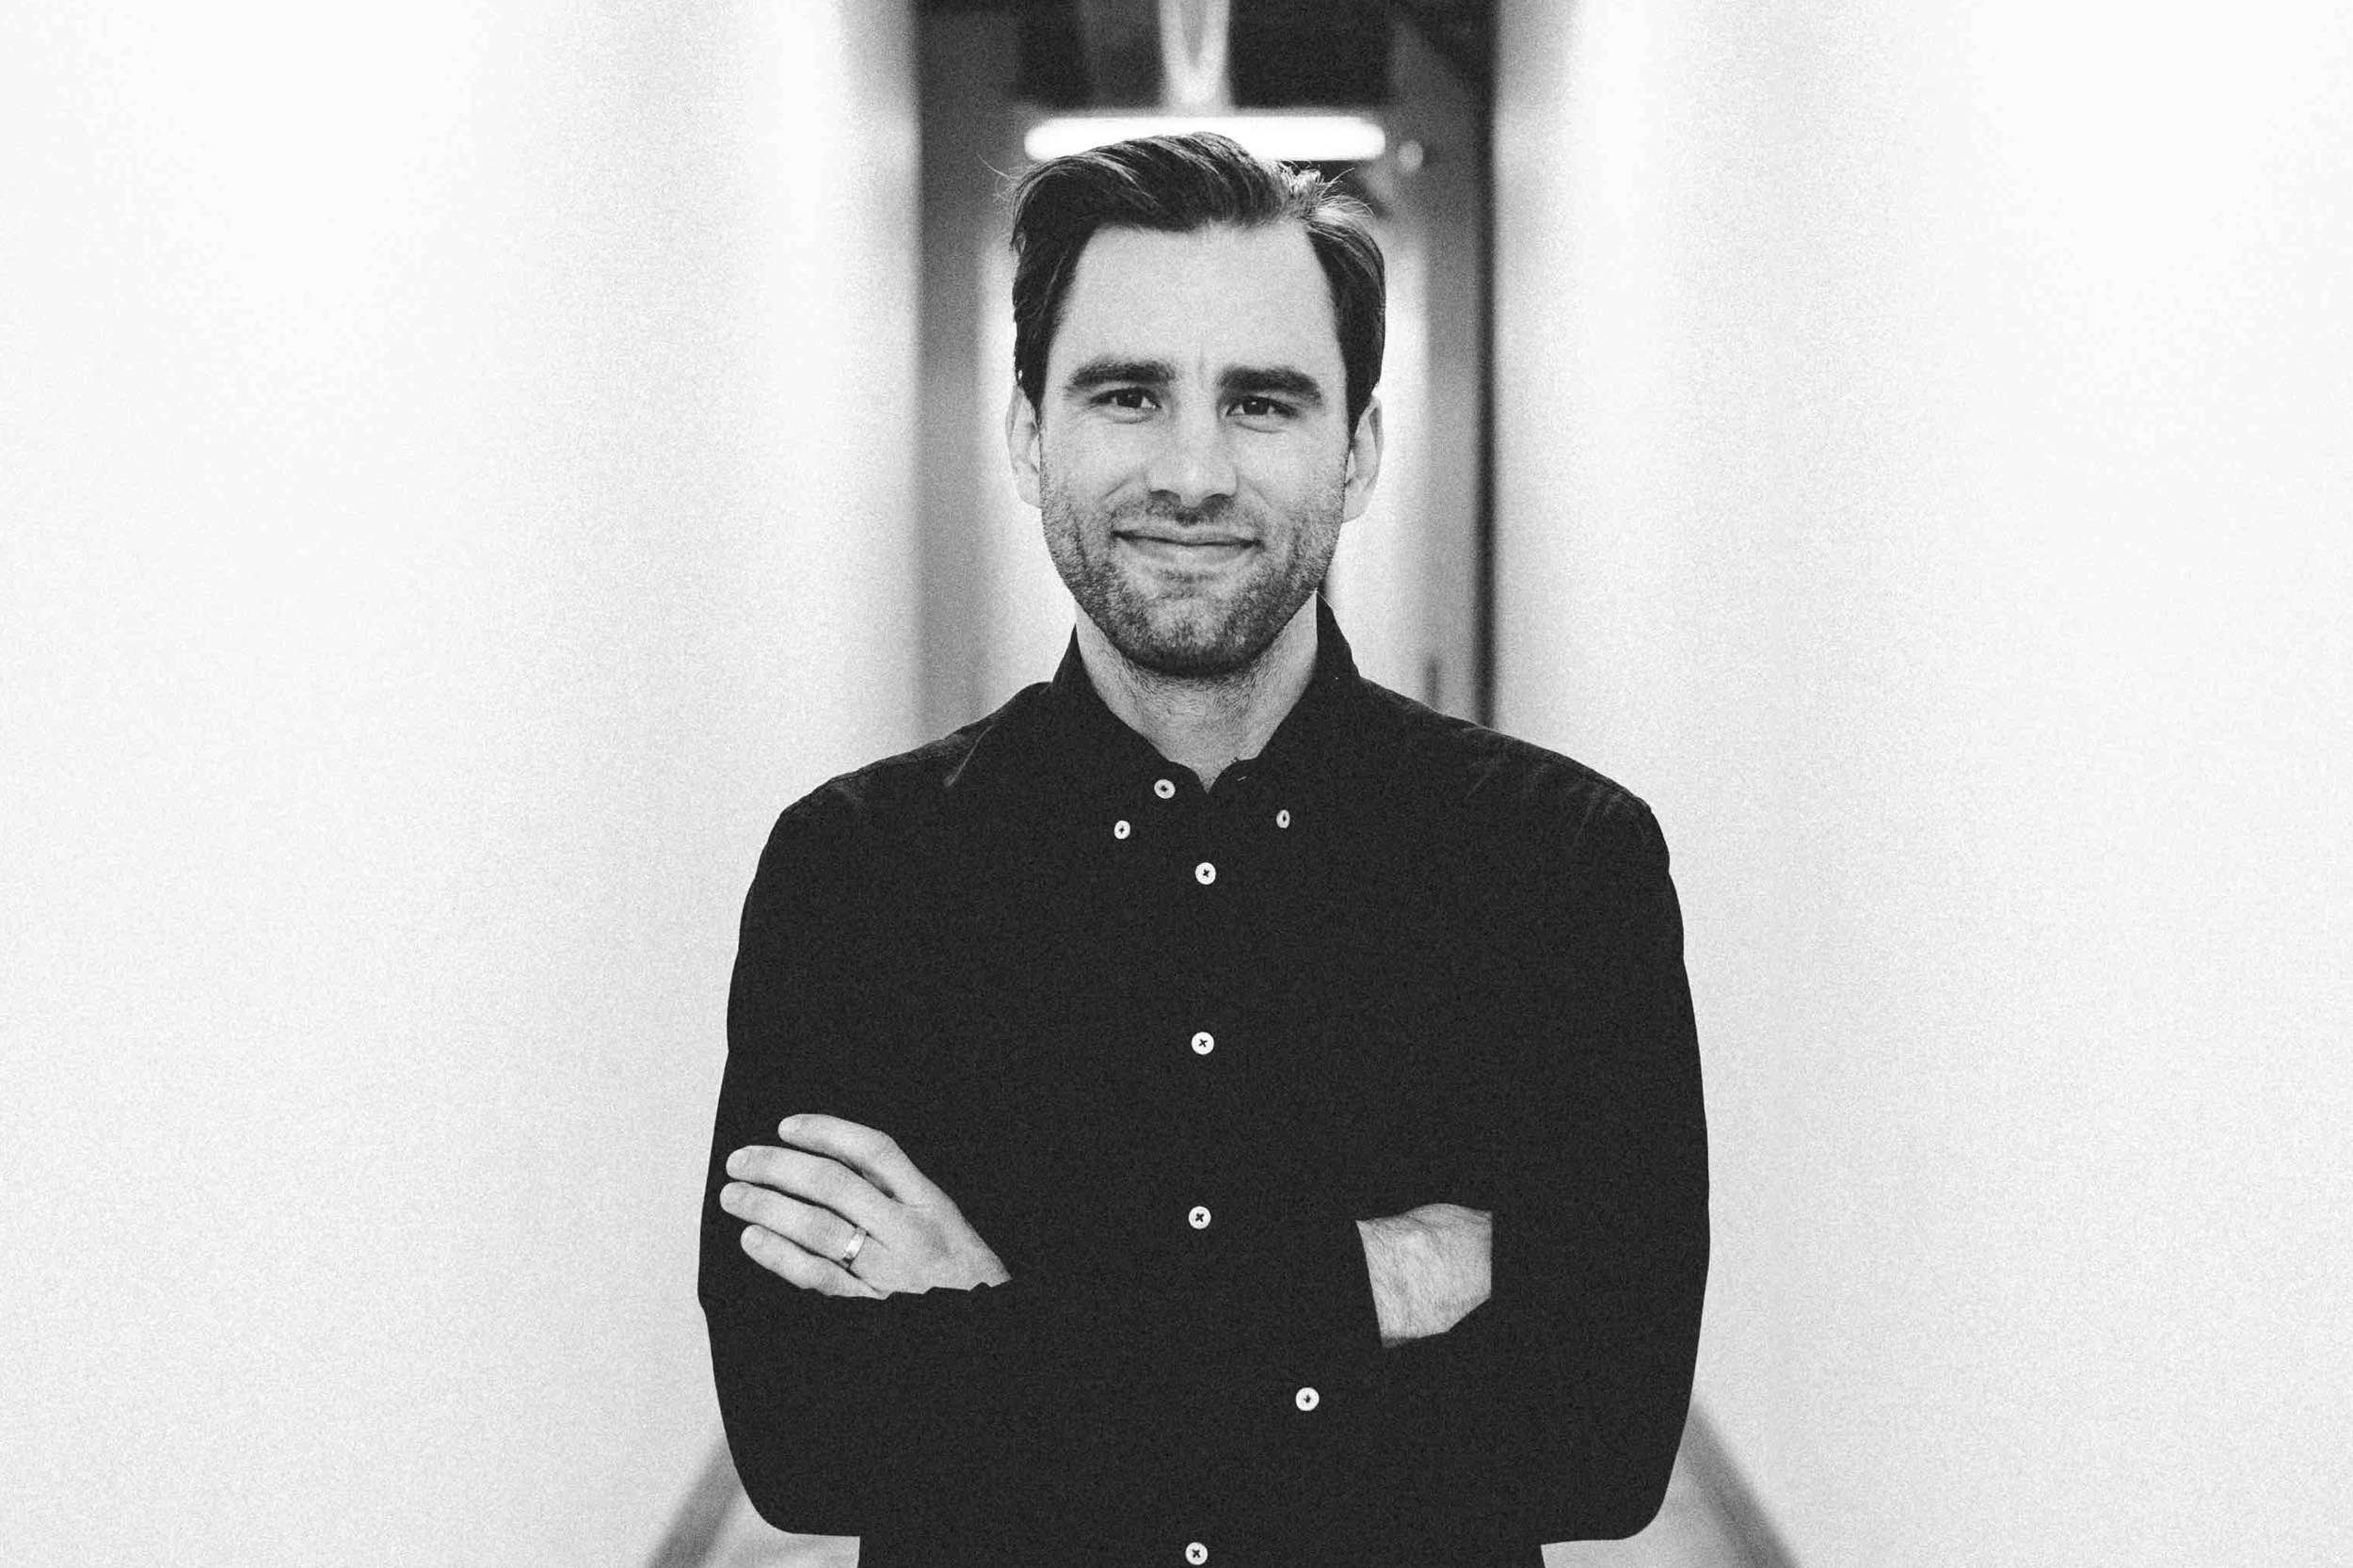 In the 7 years I spent at Kindrid, we were trusted by over 200K people who gave over $660M to churches all across America. - AS CO-FOUNDER I SERVED AS CREATIVE DIRECTOR & HEAD OF PRODUCT DESIGN, KINDRID WAS ACQUIRED IN 2017.